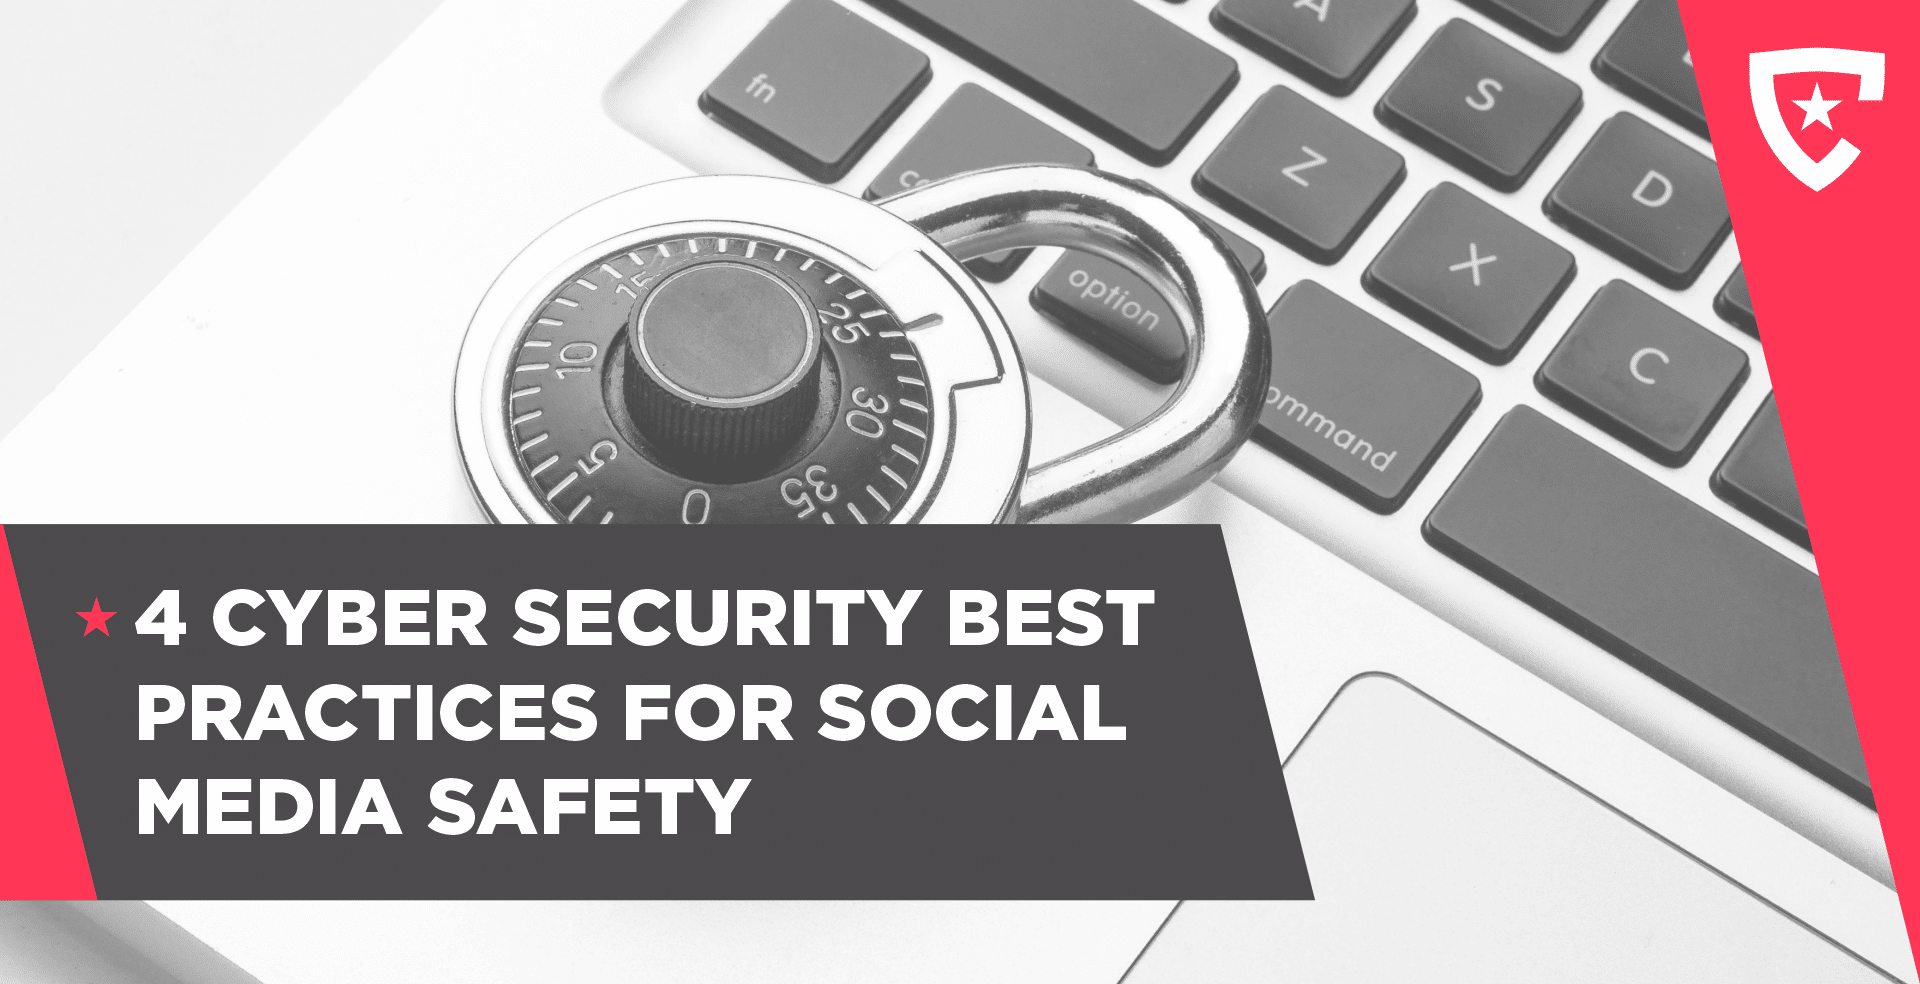 4 Cyber Security Best Practices for Social Media Safety